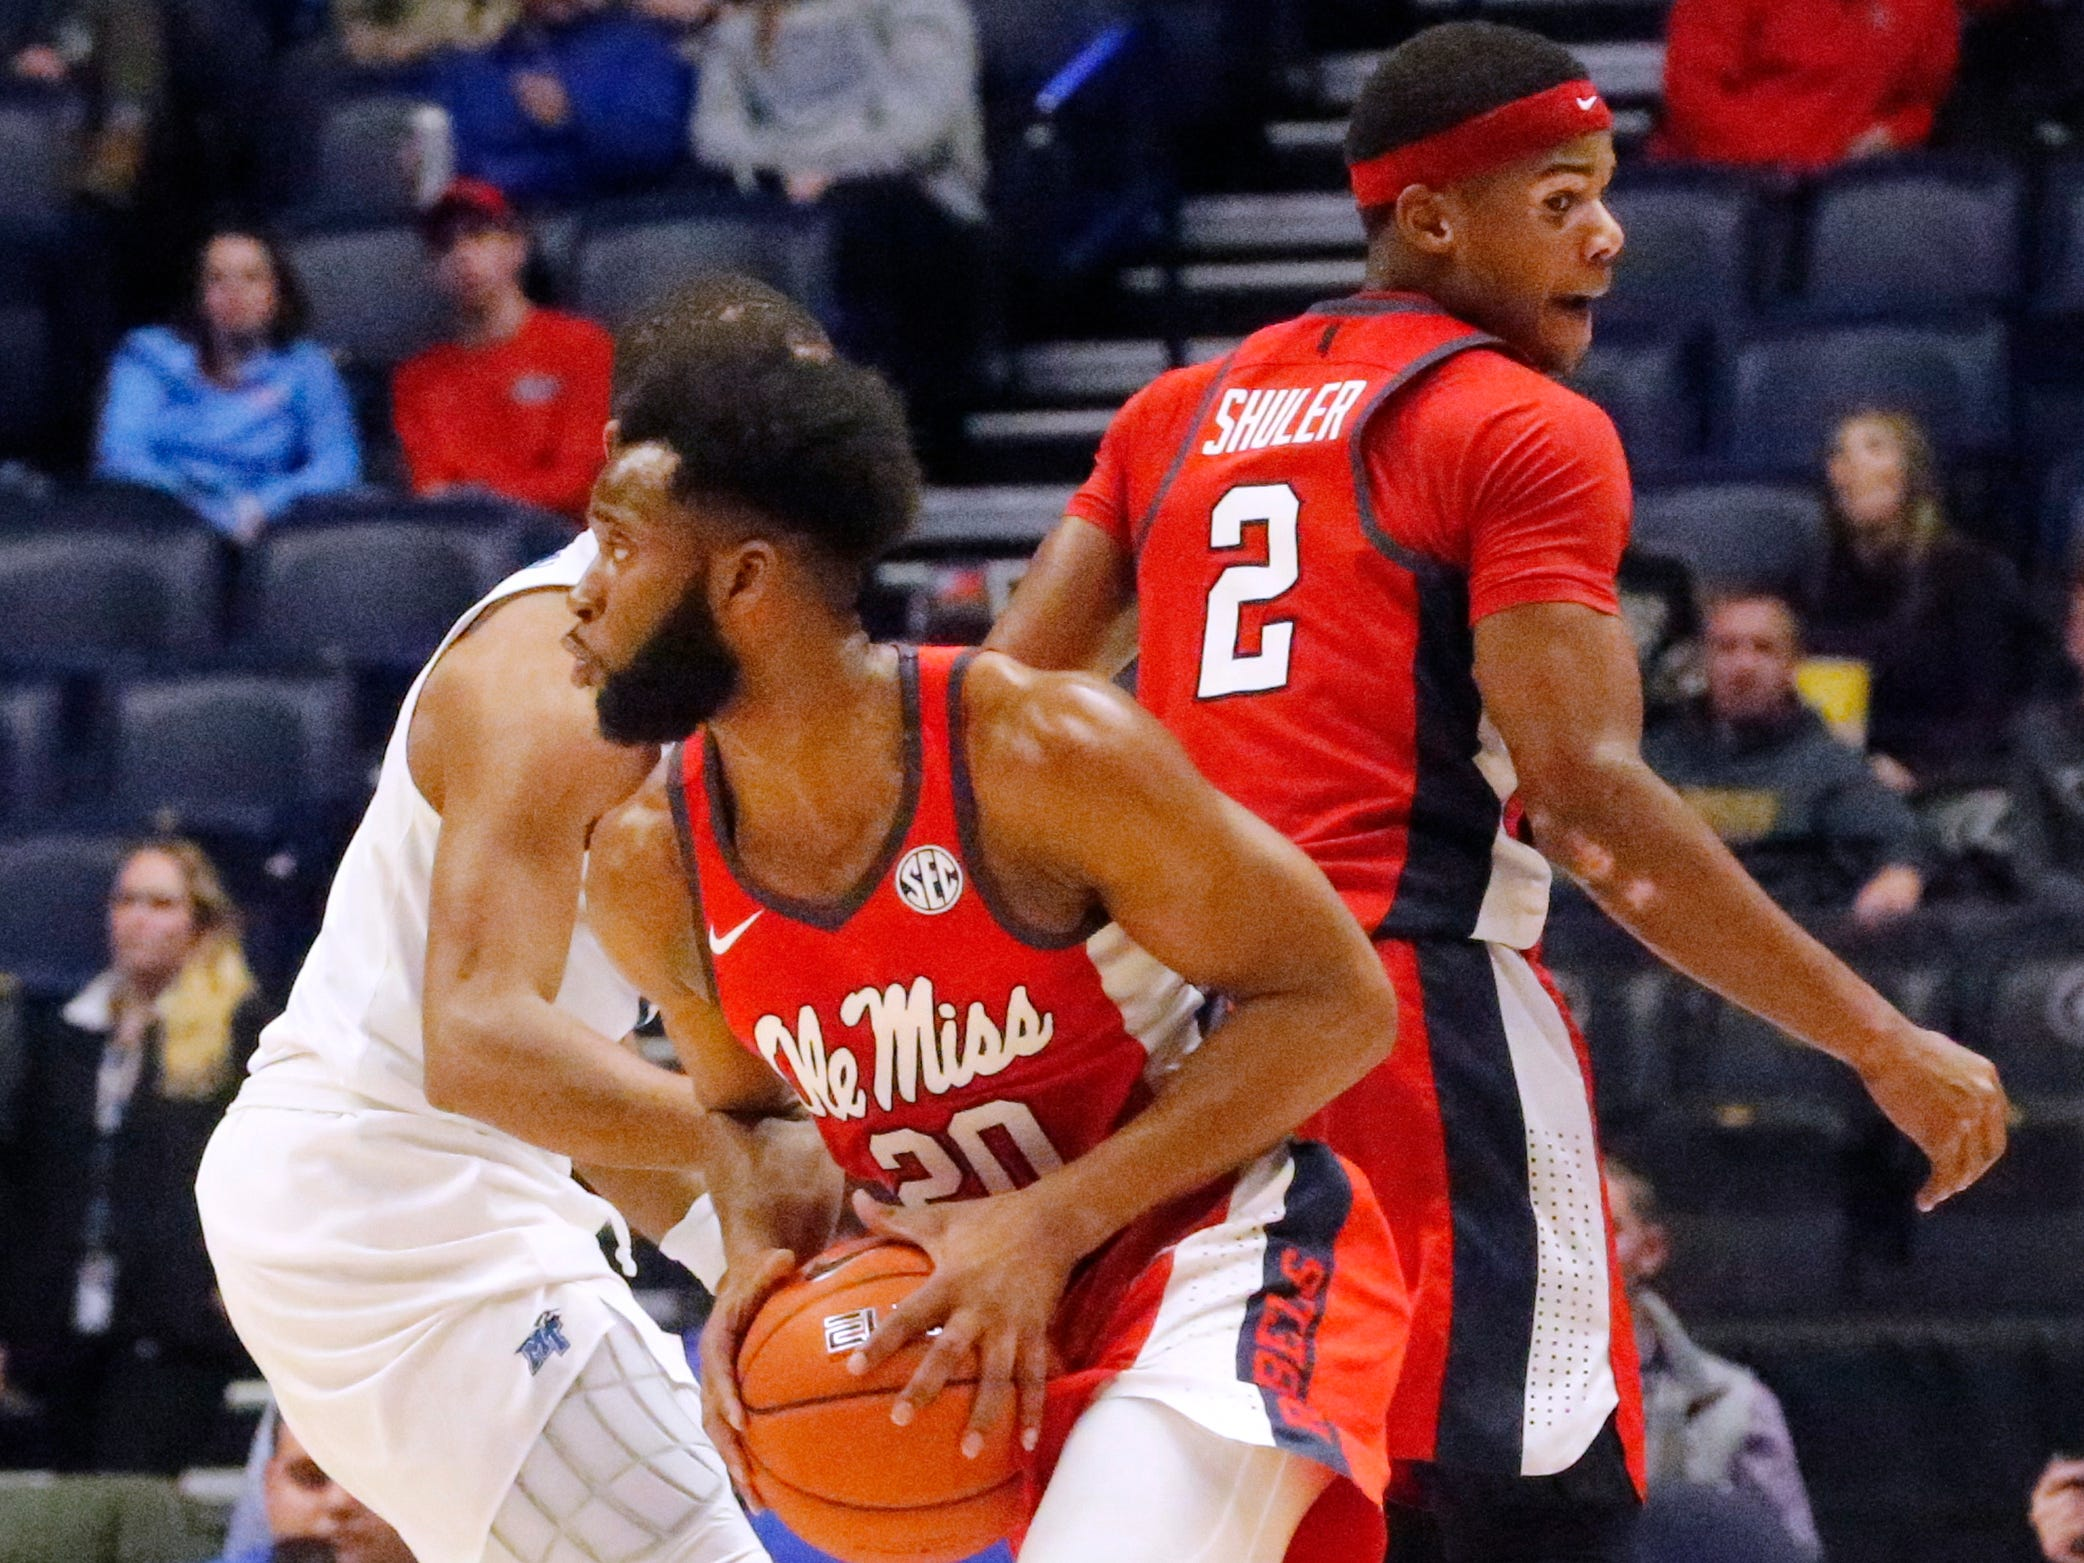 Ole Miss' guard D.C. Davis (20) moves the ball around the court during the game against MTSU on Friday Dec. 21, 2018, at Bridgestone Arena.